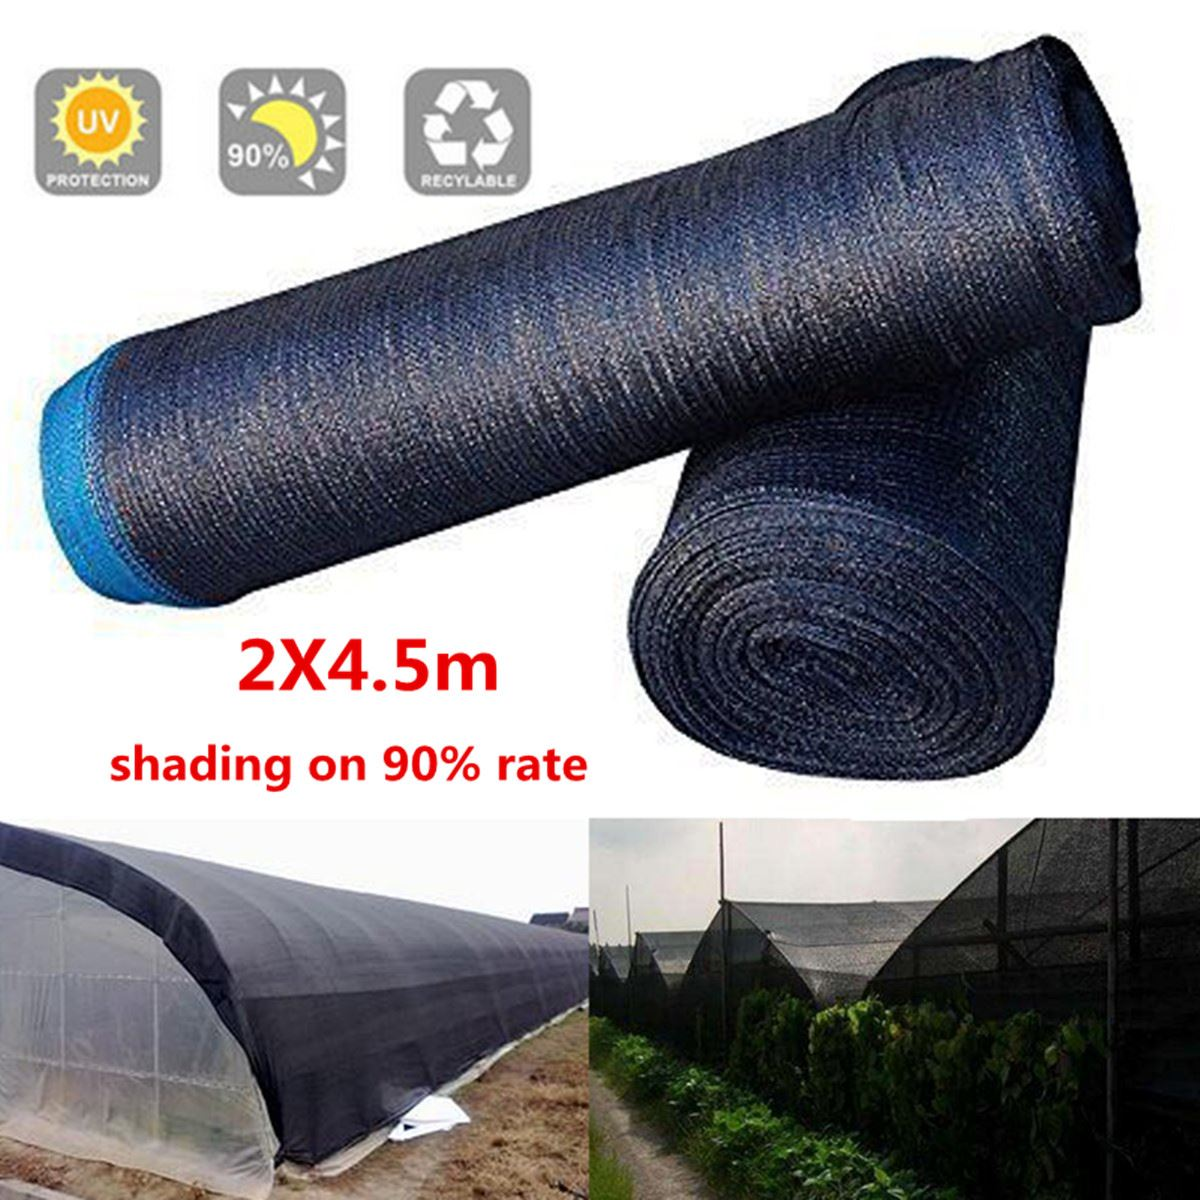 2x4.5M Mosquito Netting Bug Insect Bird Net Hunting Barrier Protect Planter Mesh Net Garden Orchard Pest Control Tools Supplies